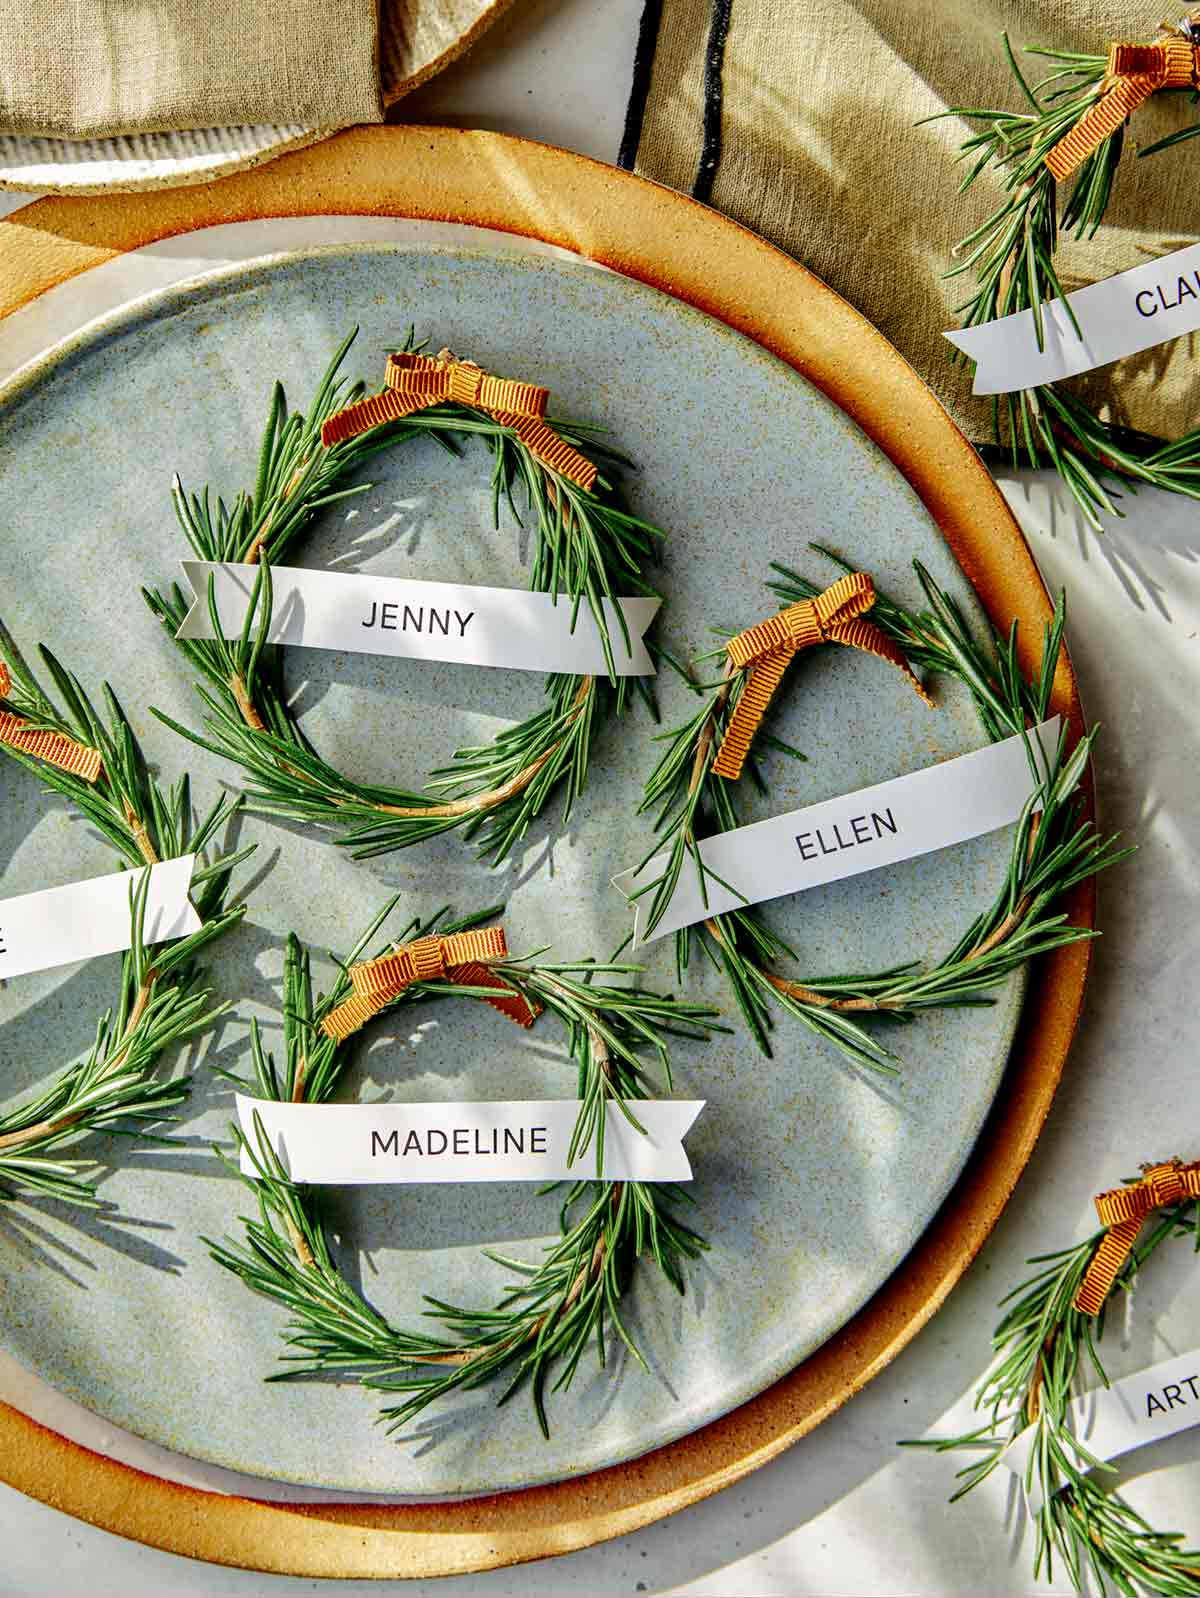 Rosemary wreath place cards with plates and linens.